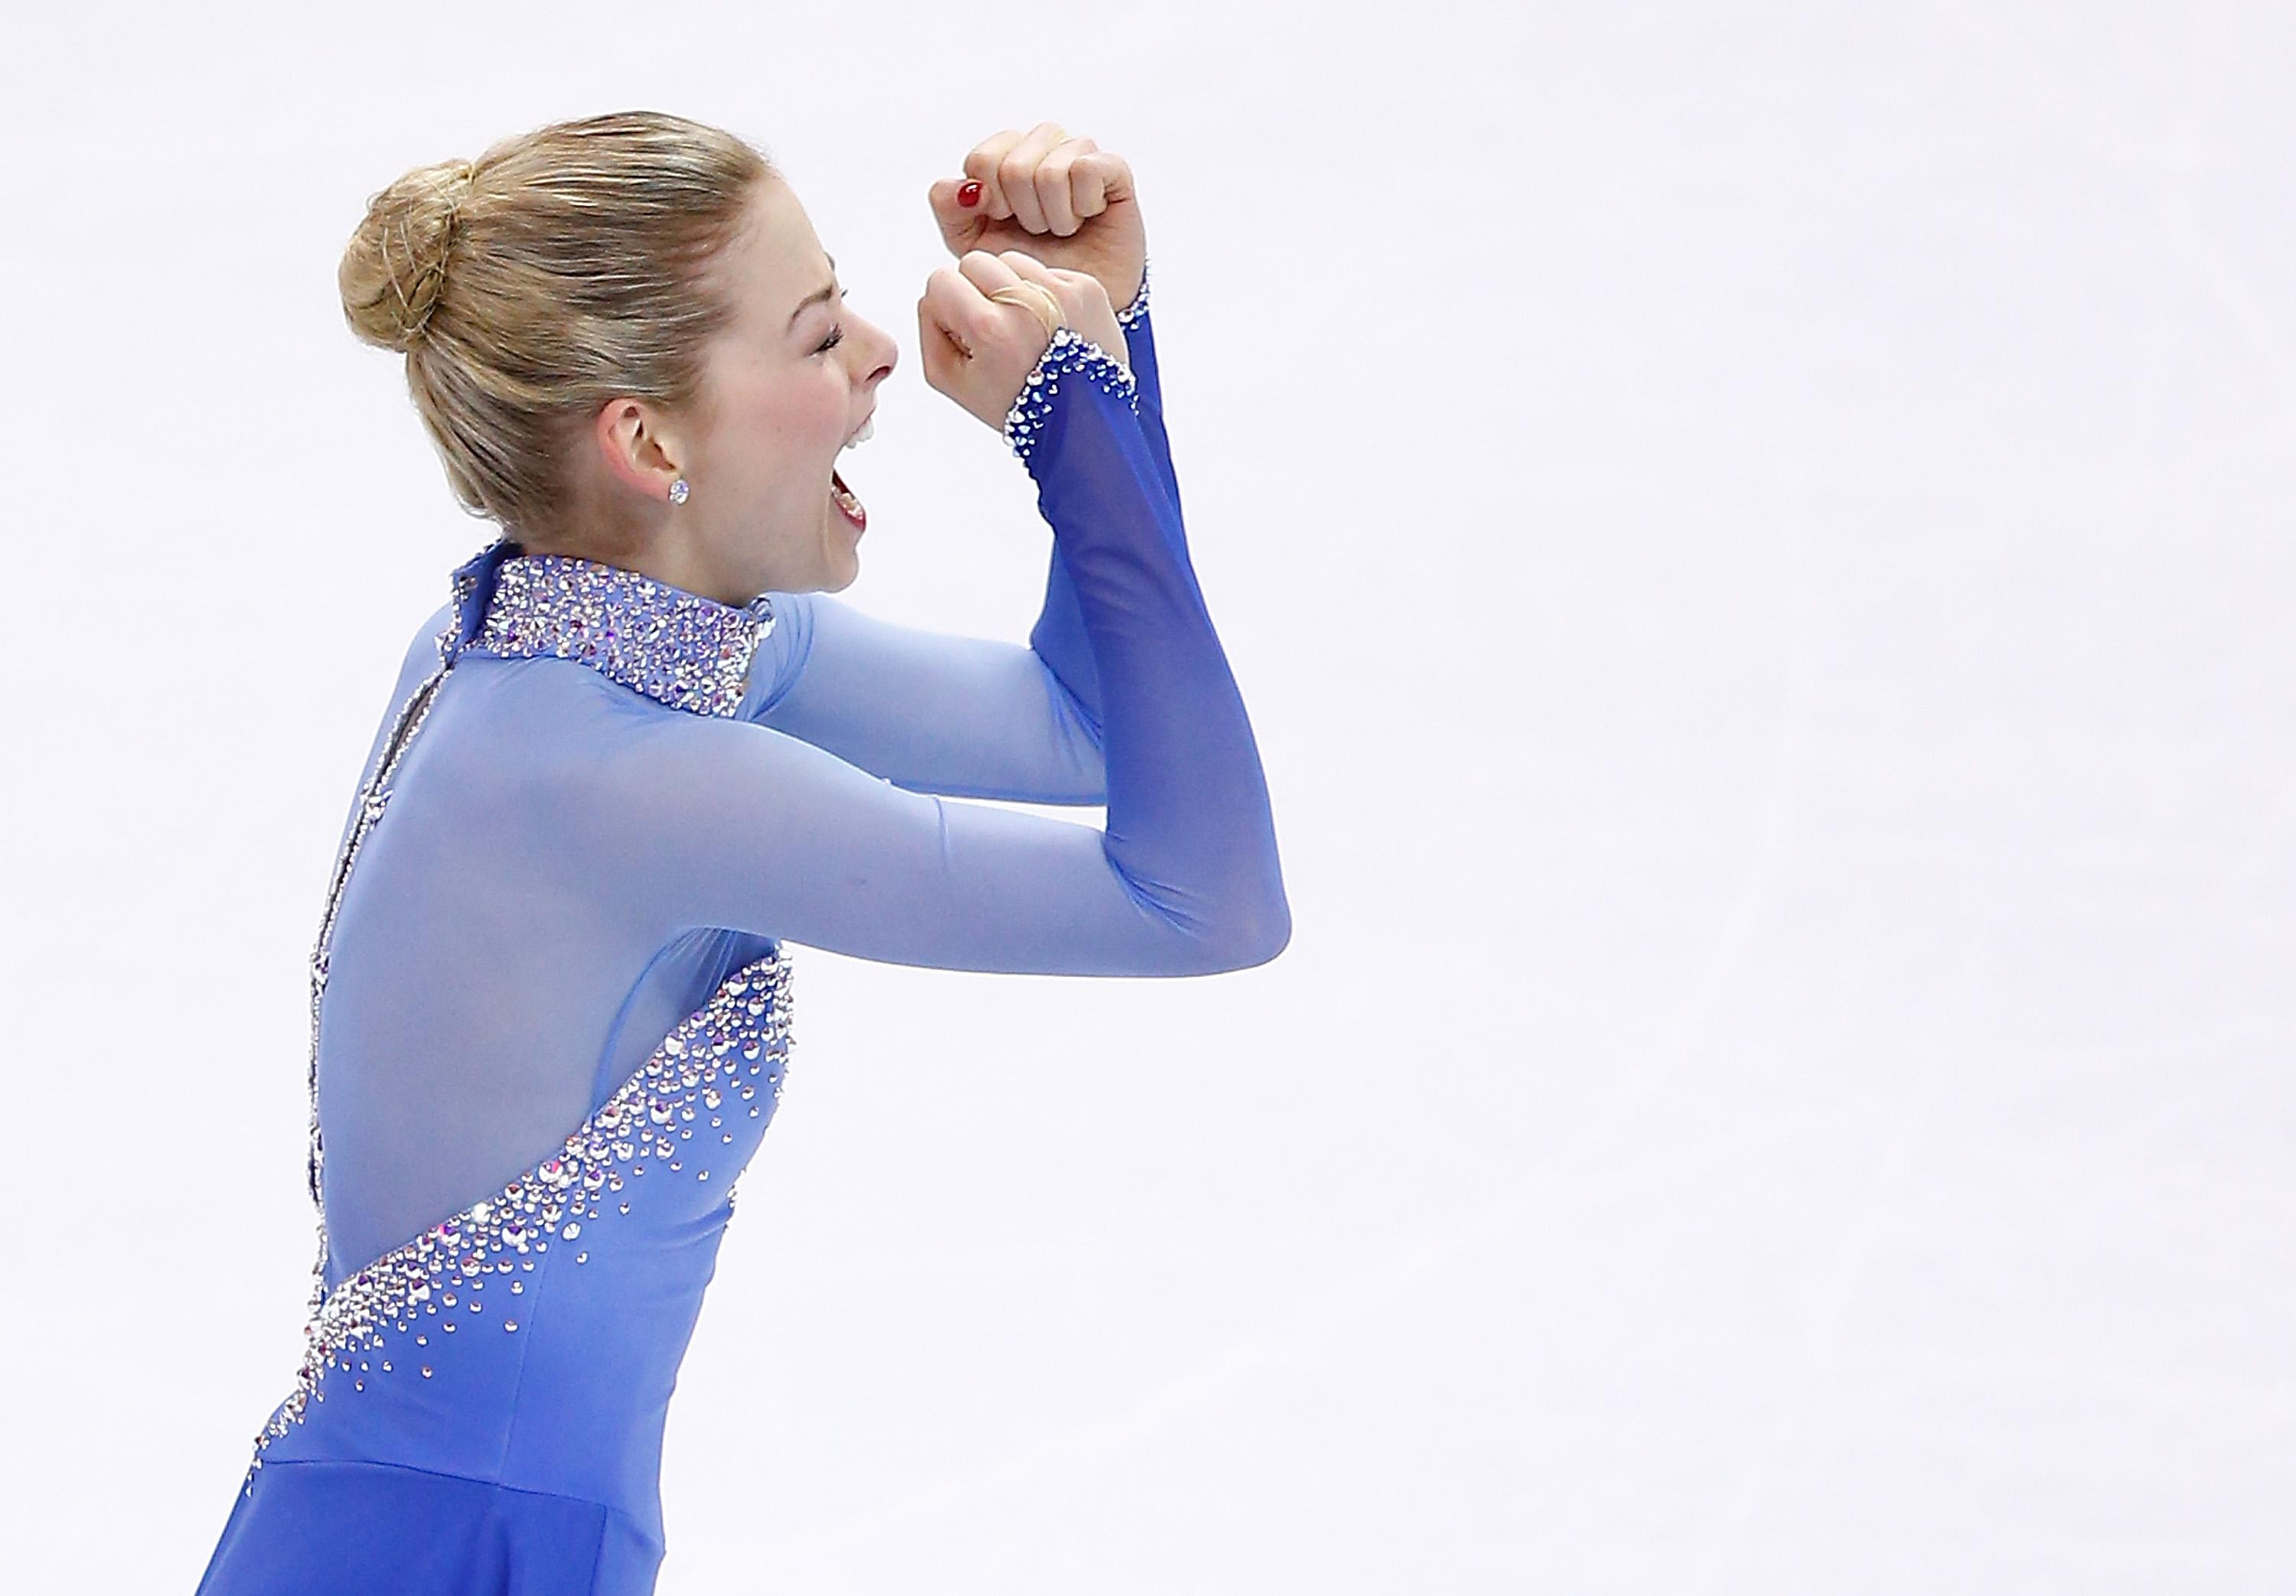 gracie gold wins gold at u